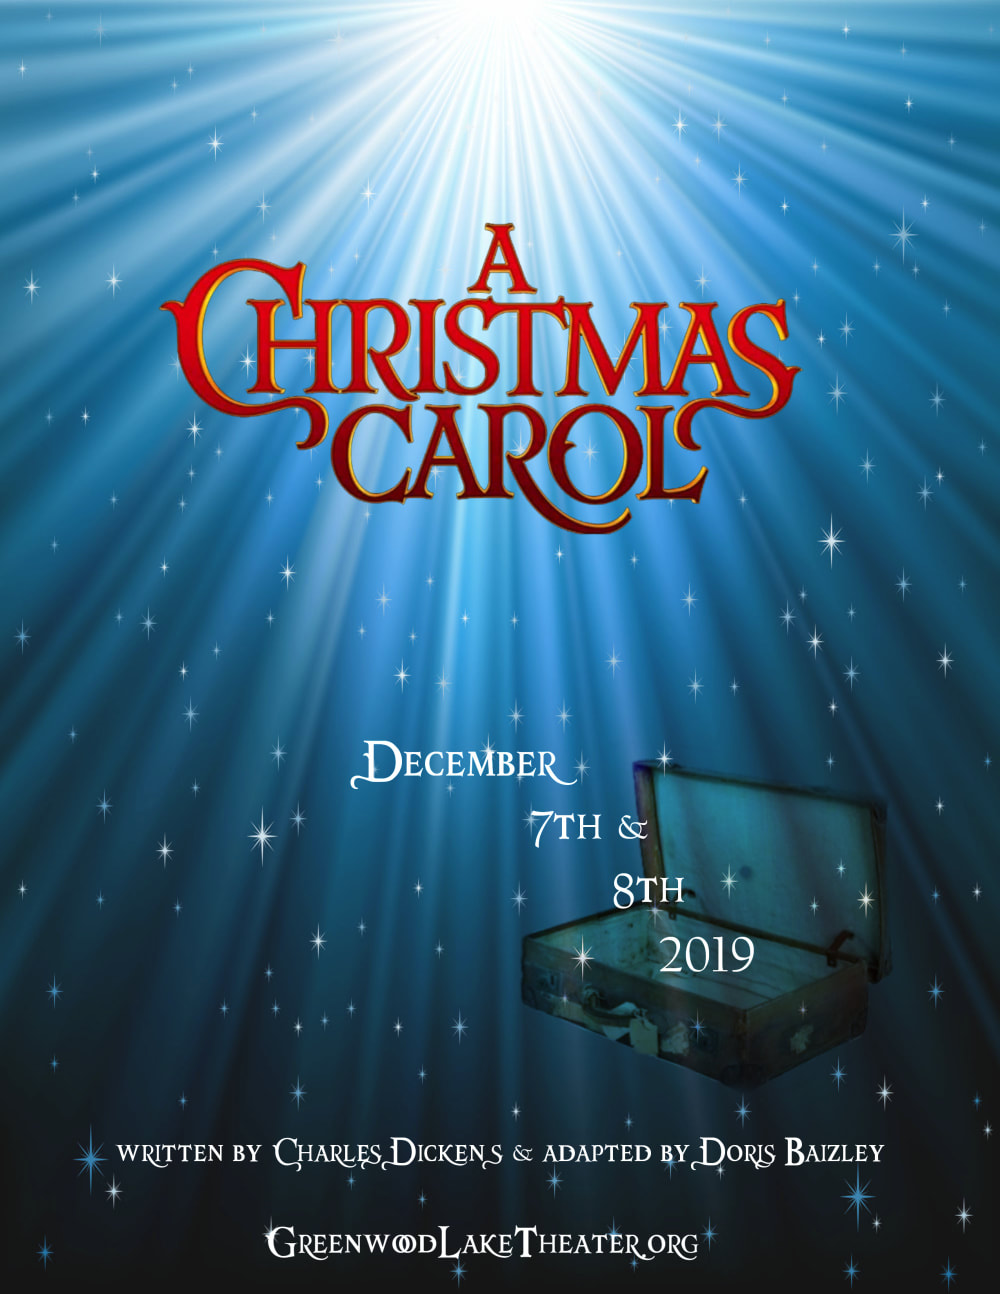 When Was A Christmas Carol Written.A Christmas Carol Greenwood Lake Theater